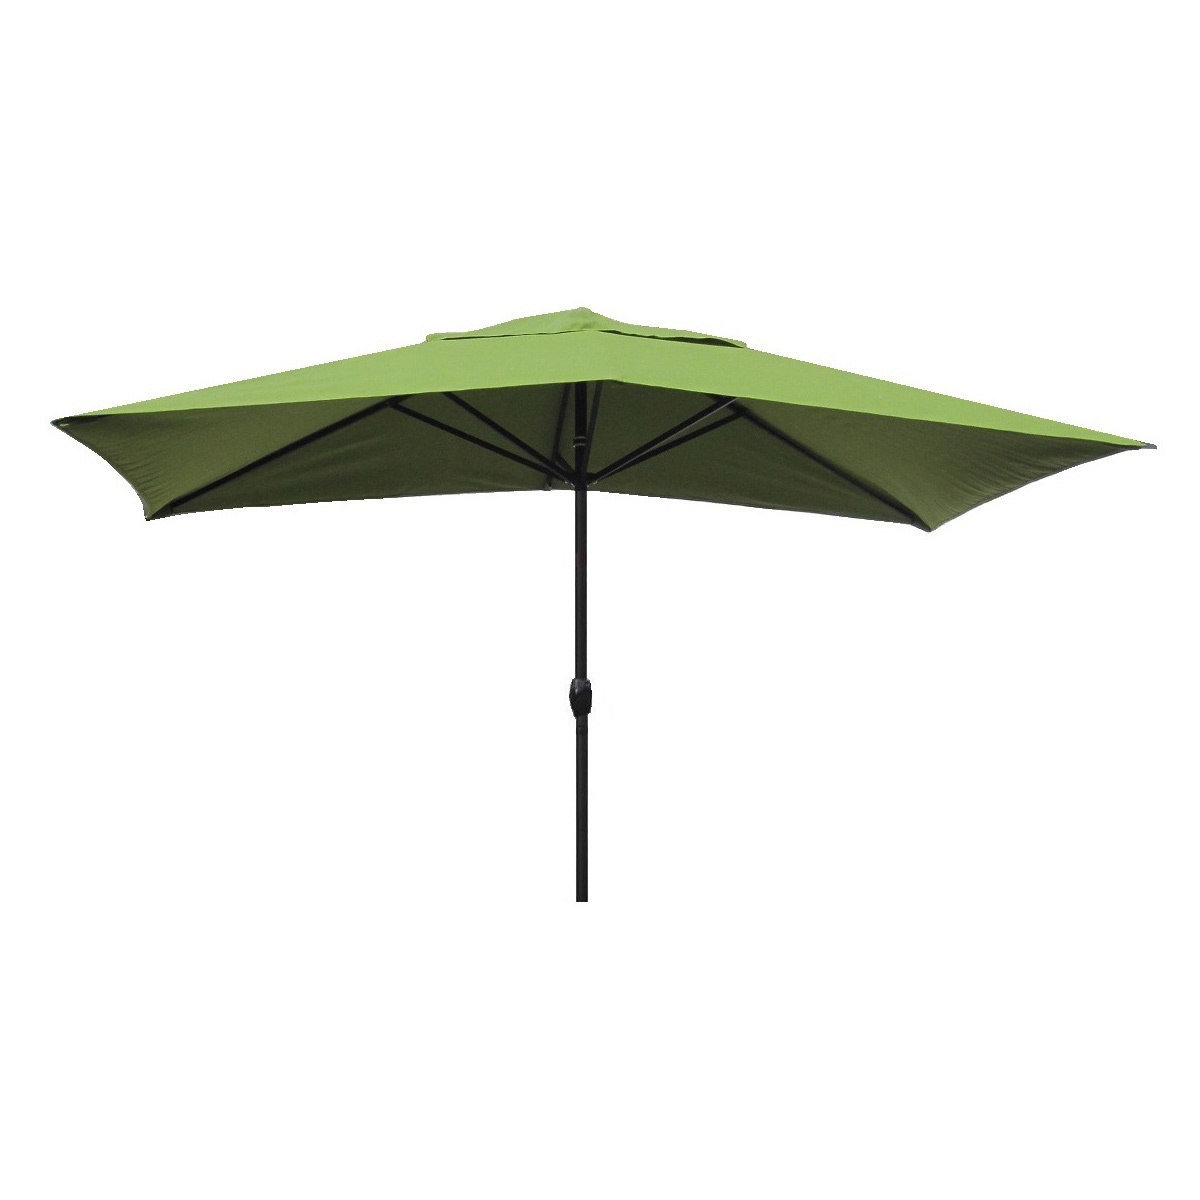 Popular Gries 10' X 6' Rectangular Market Umbrella Pertaining To Sherlyn Rectangular Market Umbrellas (View 6 of 20)